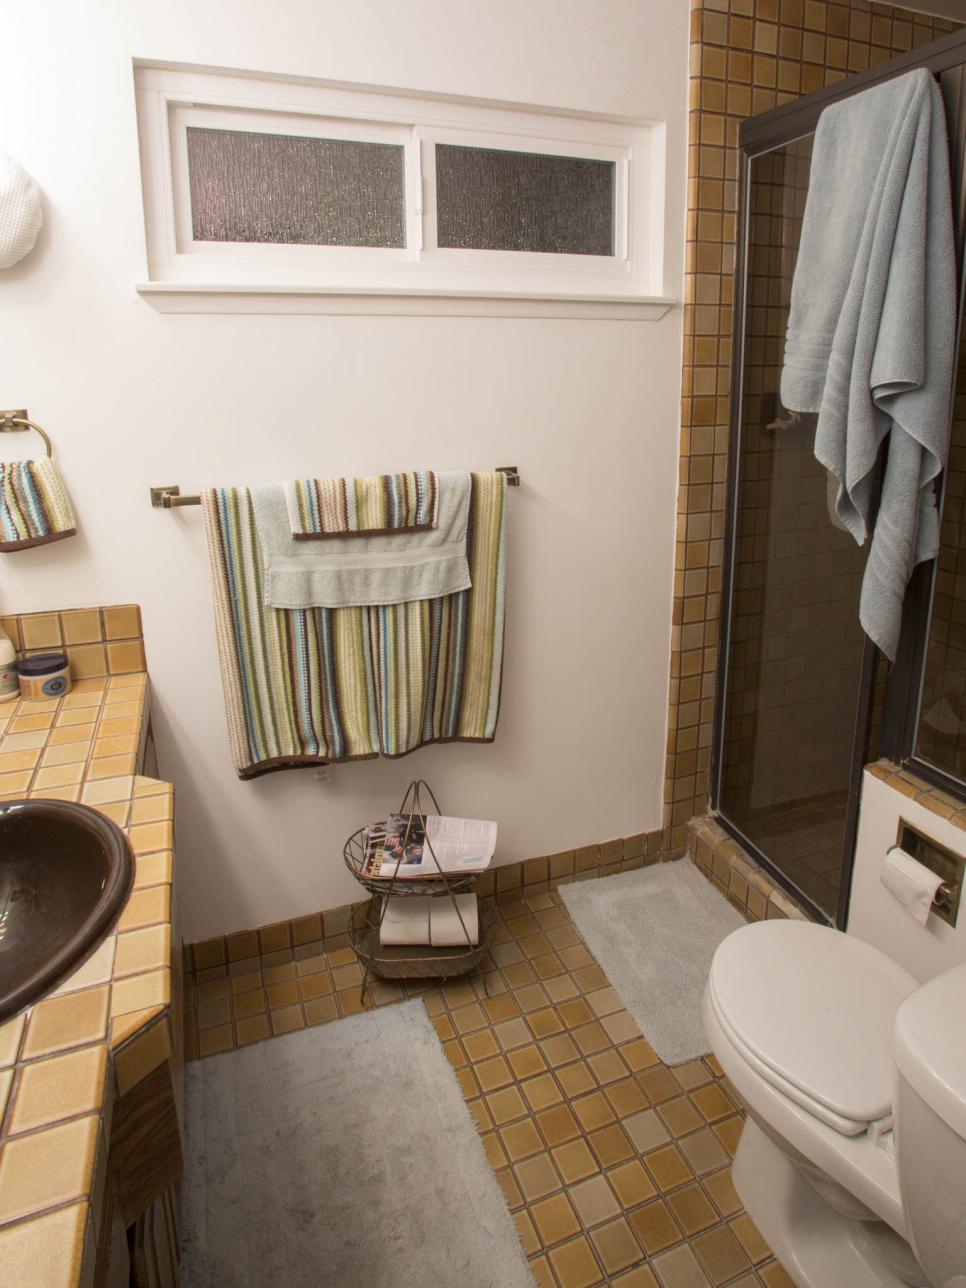 20 small bathroom before and afters hgtv - Bathroom Improvement Ideas